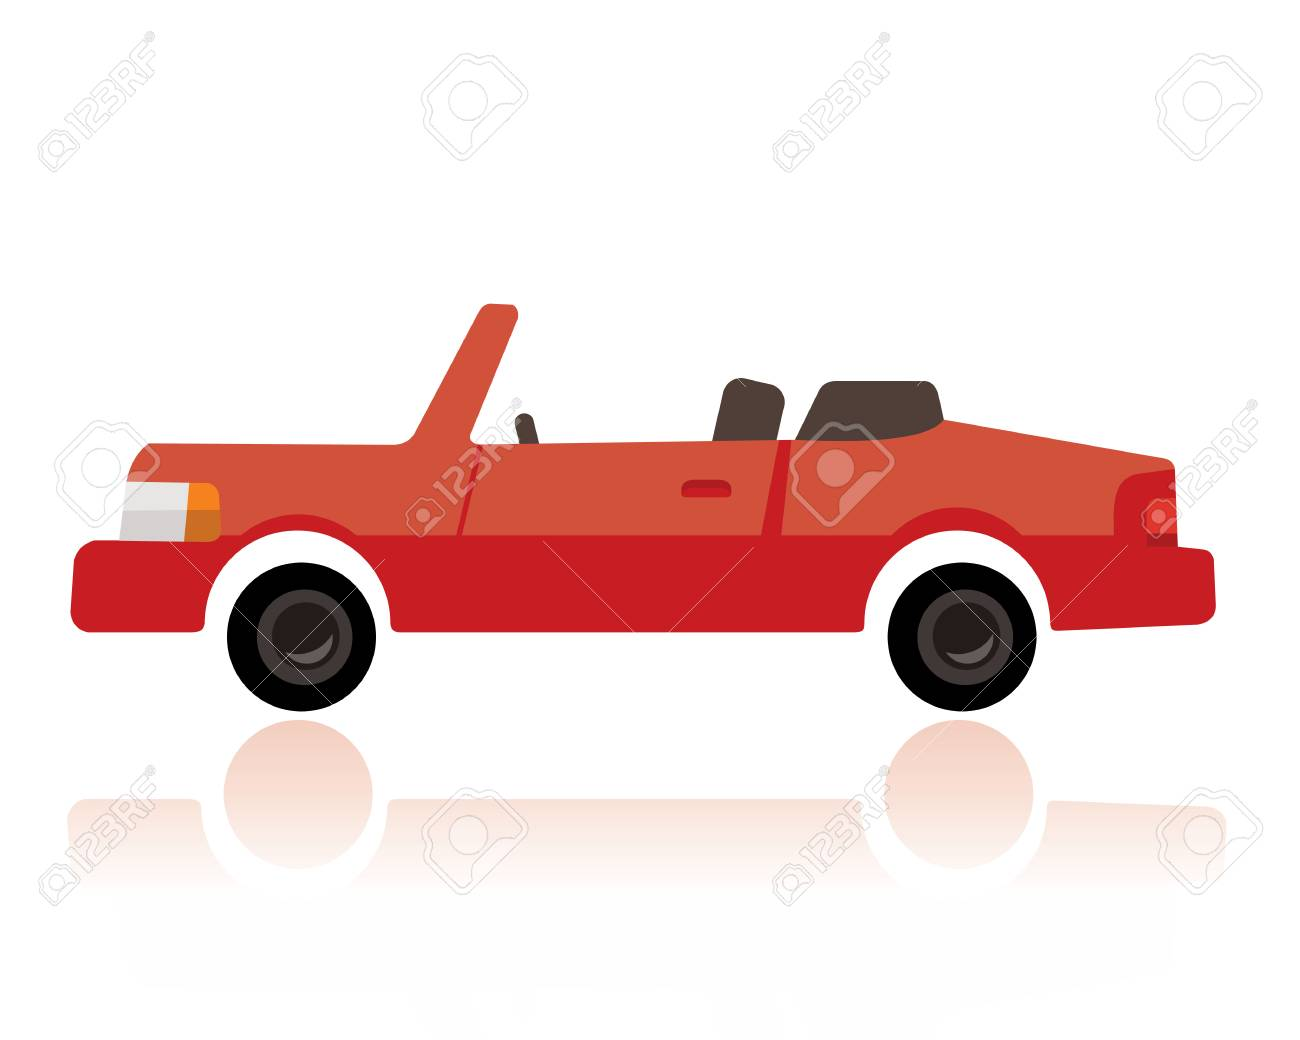 A Red Convertible Car Funny Cartoon Style On White Background Royalty Free Cliparts Vectors And Stock Illustration Image 87798269